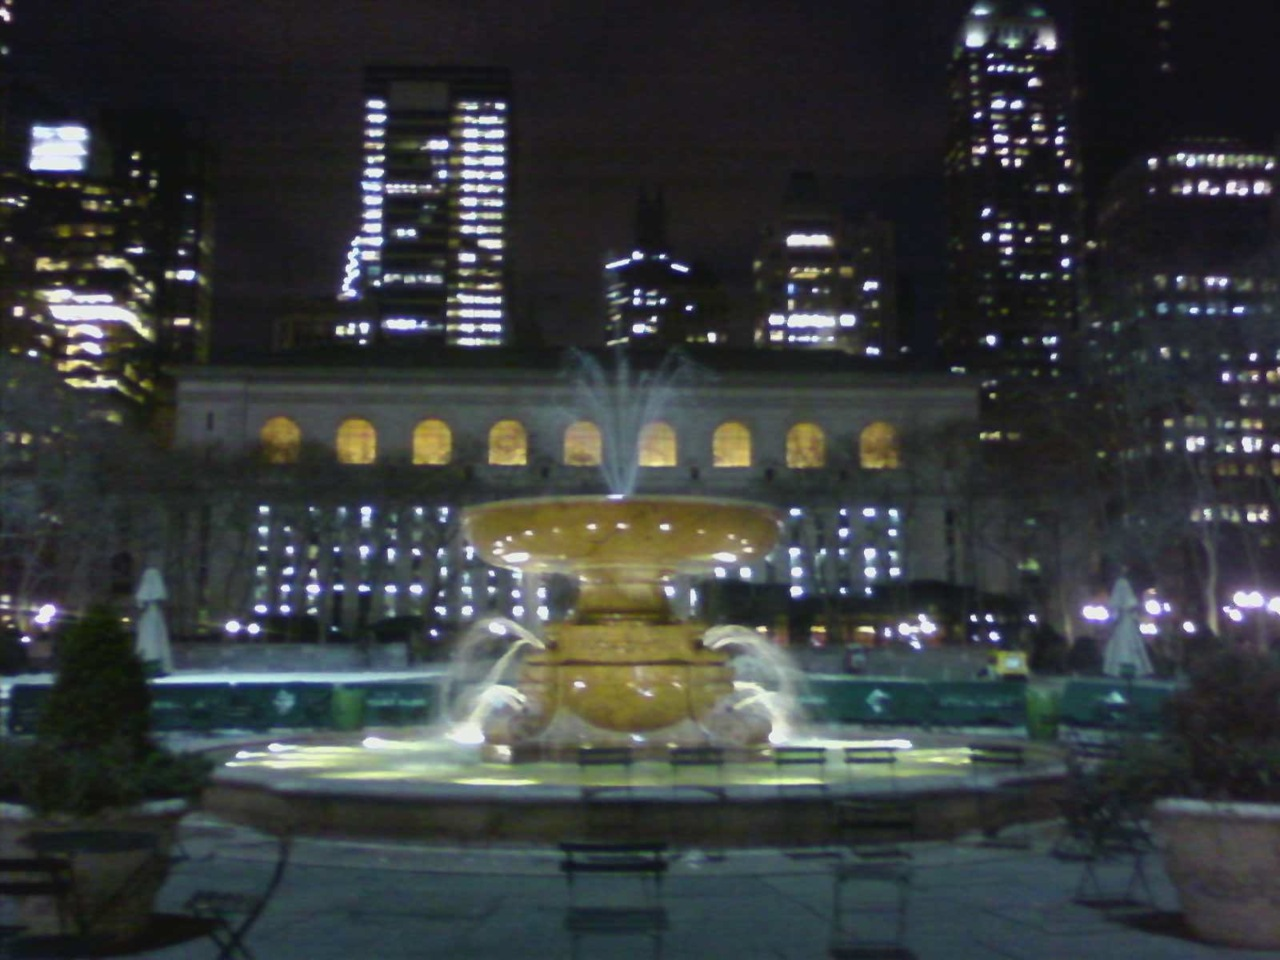 Goodbye Bryant Park Ice Skating rink, hello fountain! I'm starting to see more signs of Spring around the city and couldn't be more excited!